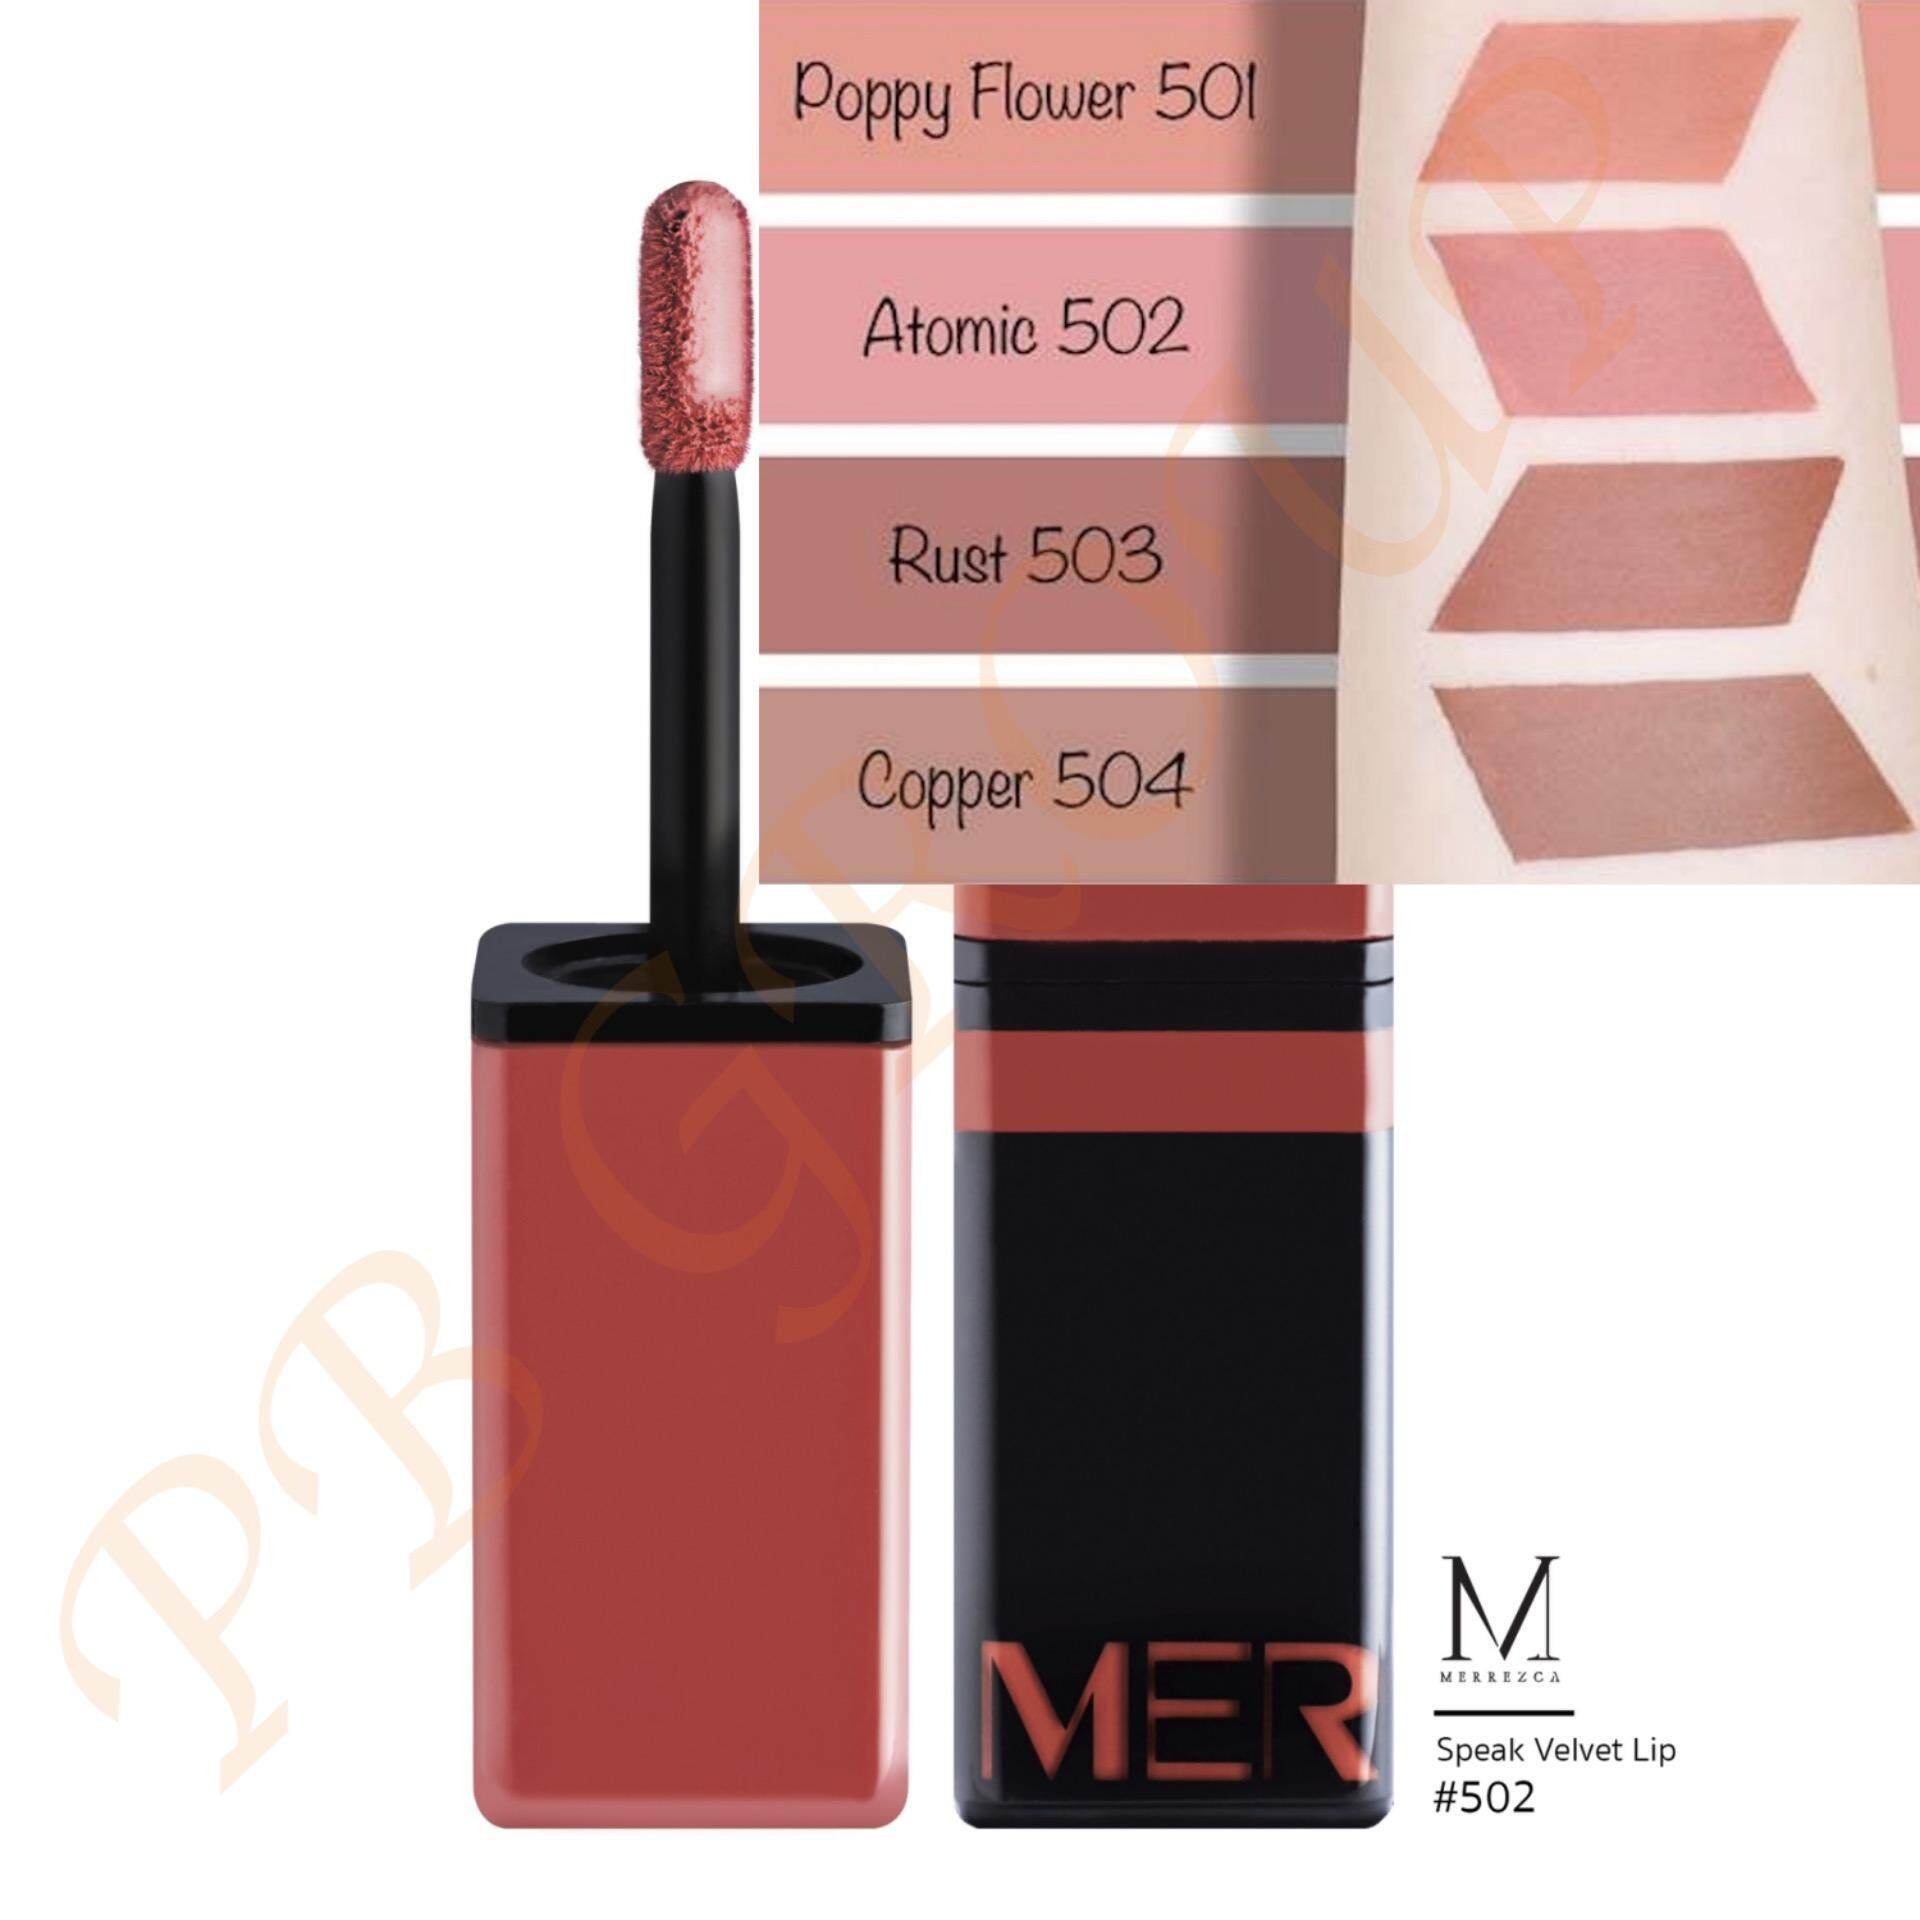 Merrezca Speak Velvet Lip 12ml. # 502 Atomic